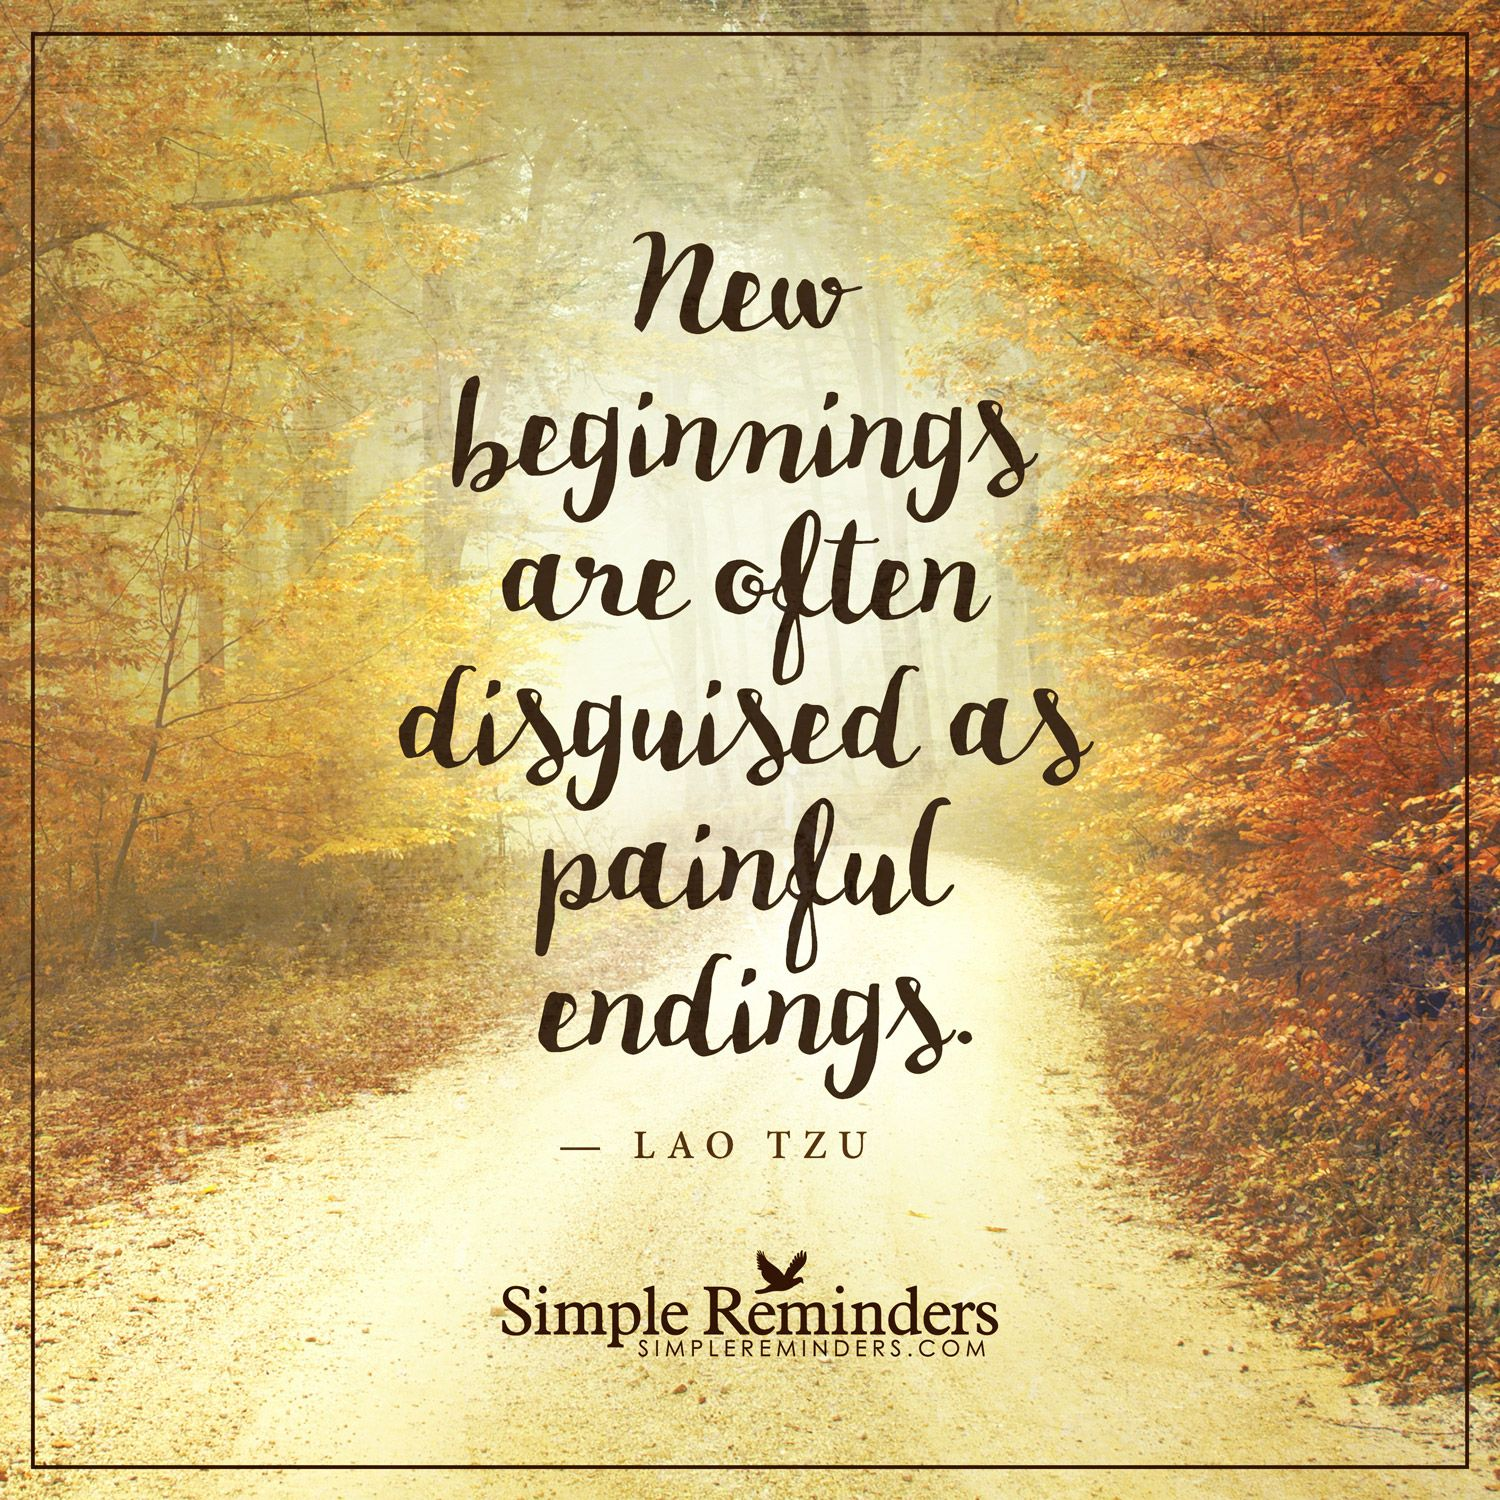 Quotes New Beginnings New Beginnings New Beginnings Are Often Disguised As Painful